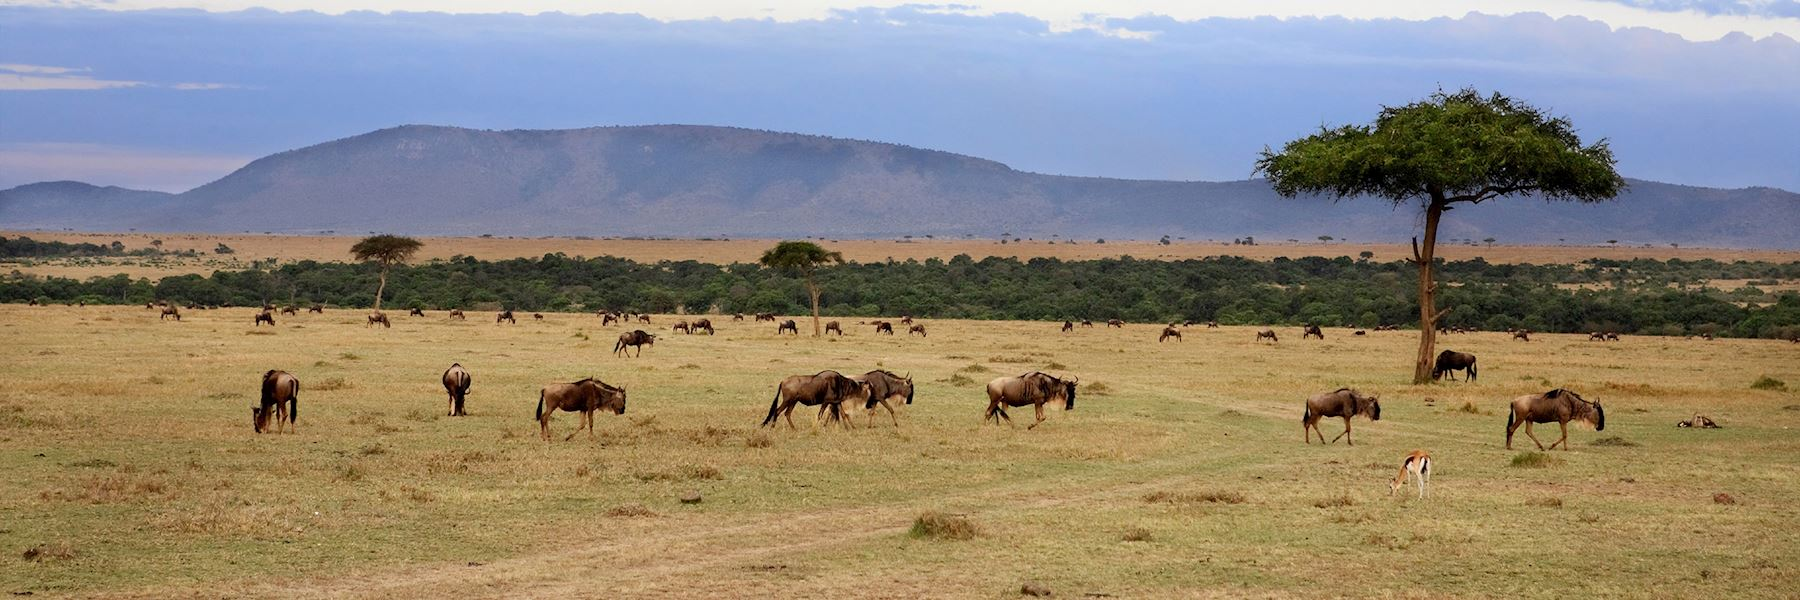 Kenya safaris & vacations